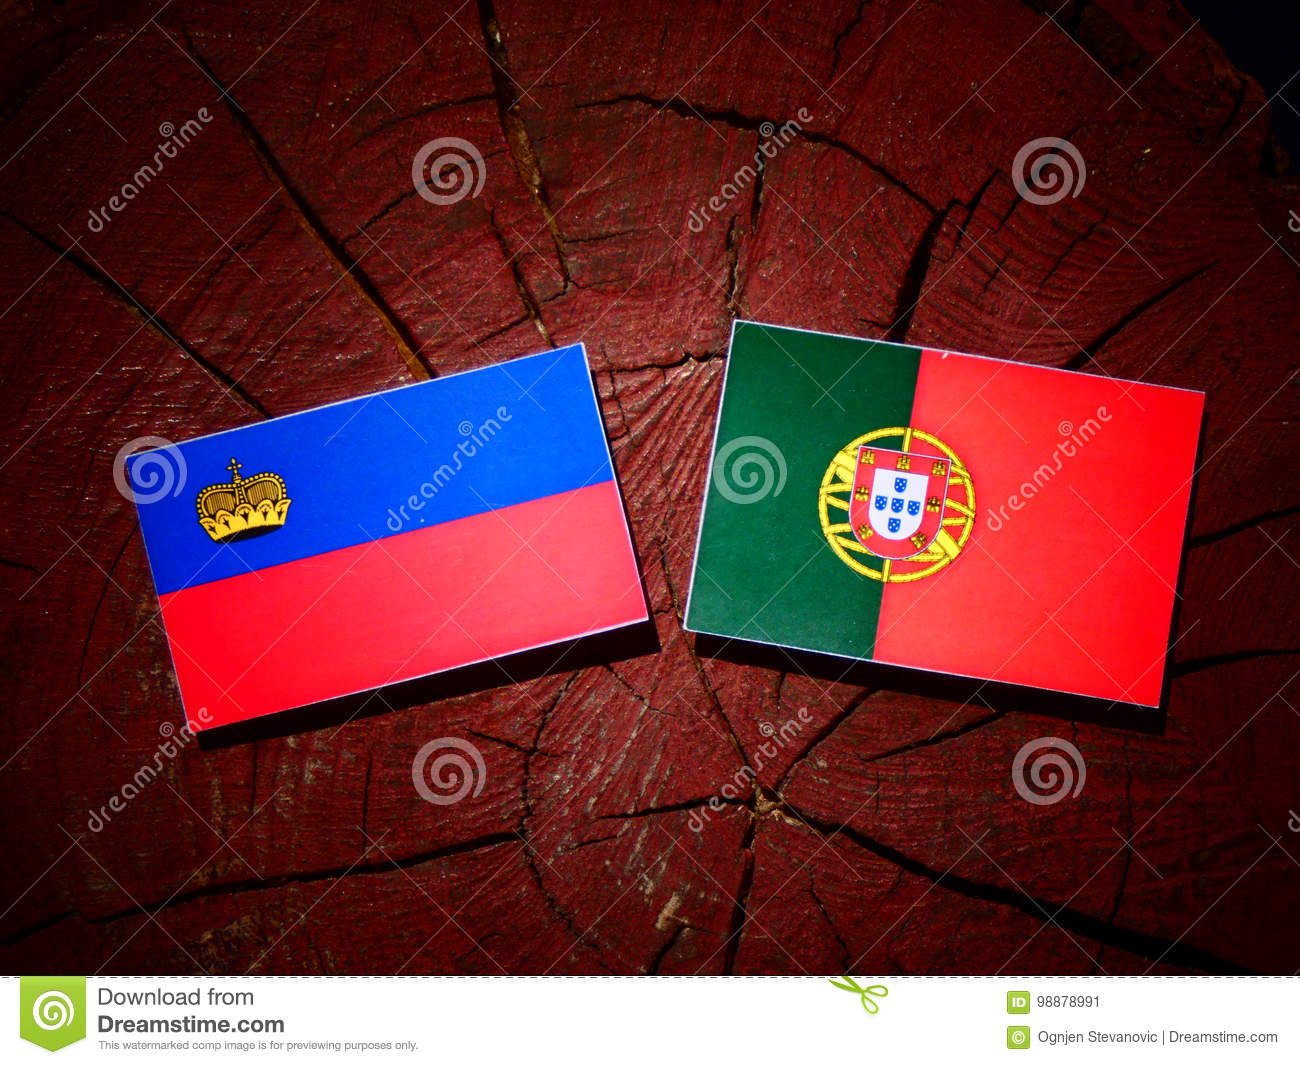 Liechtenstein flag with Portuguese flag on a tree stump isolated